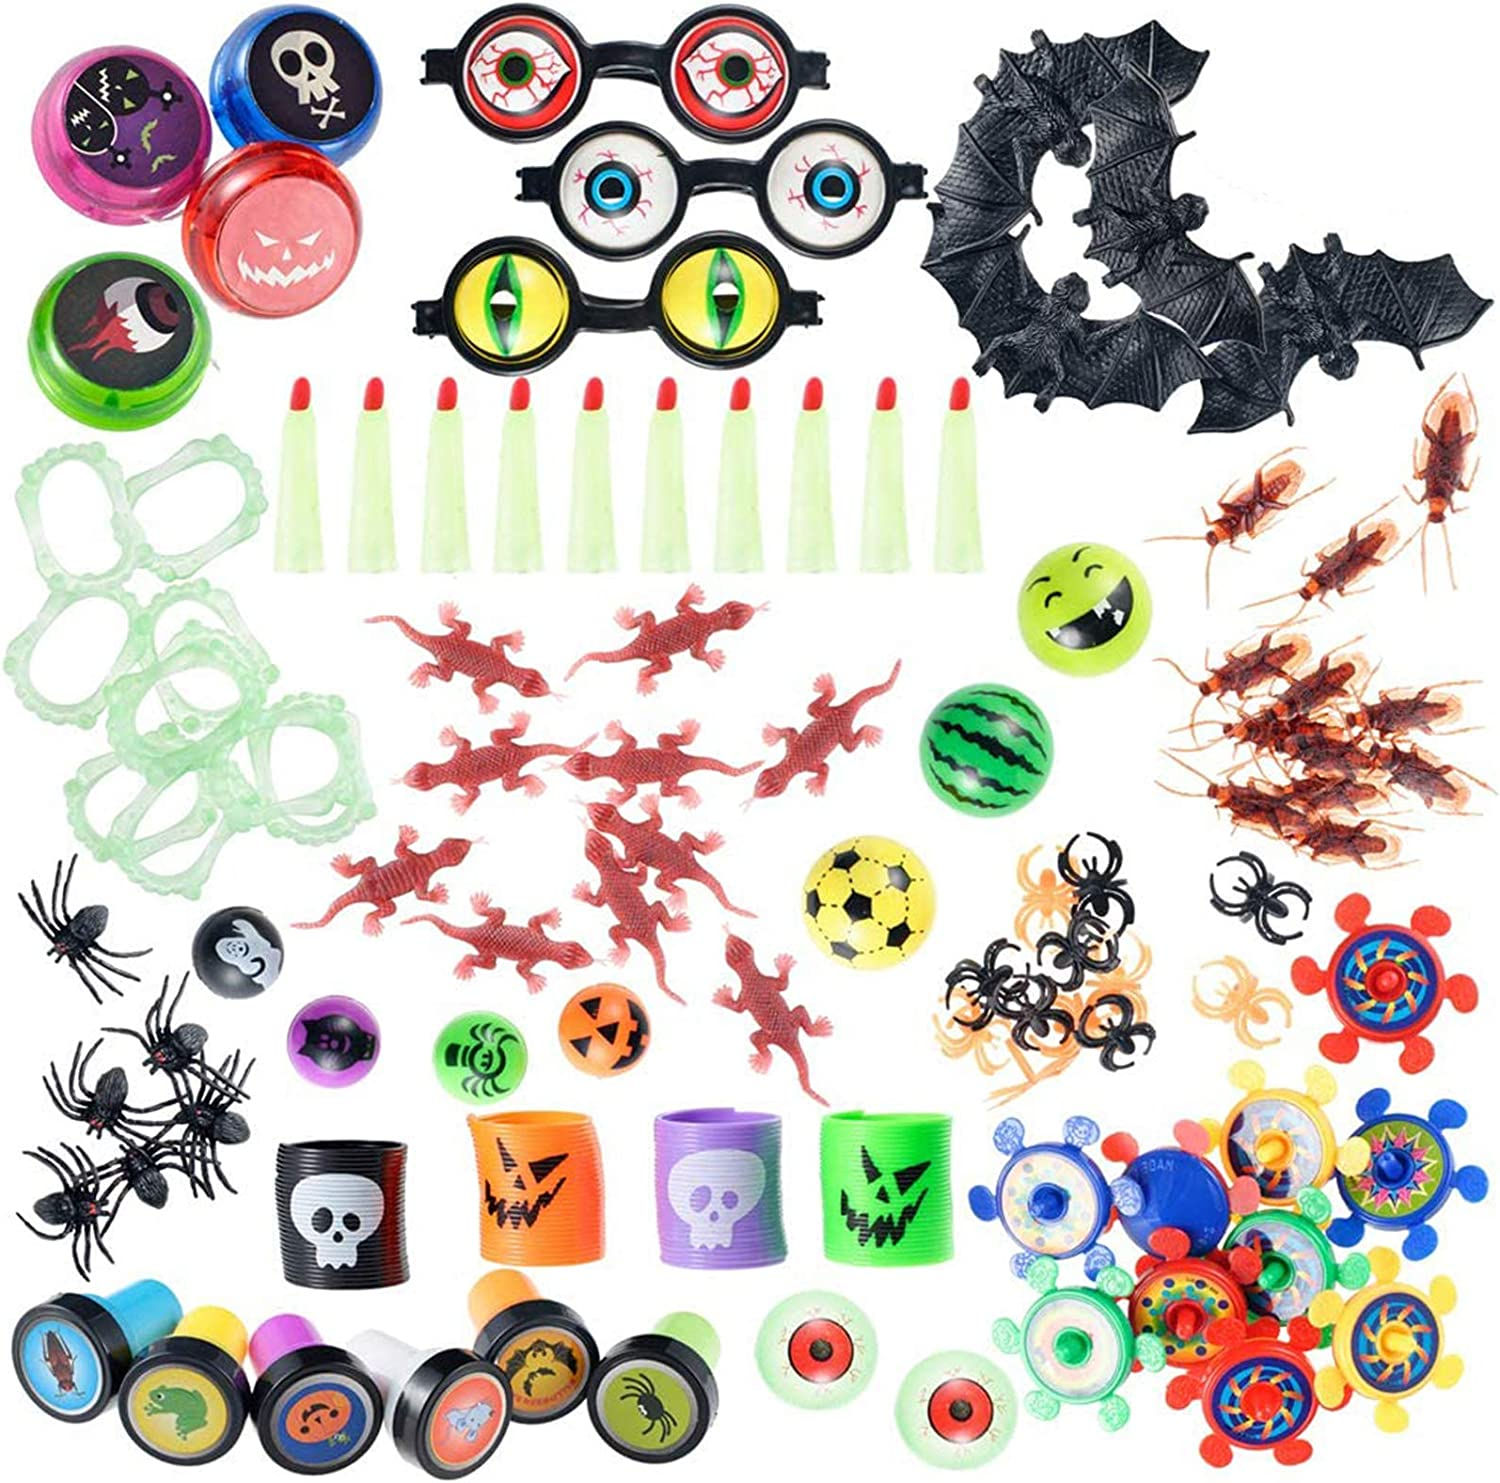 XADP 100 PCS Novelty Halloween Toys Assortment Halloween Party Favors Halloween Trick or Treat Prizes School Classroom Rewards for Kids Bulk Toys Pinata Fillers Carnival Prizes Goody Bags